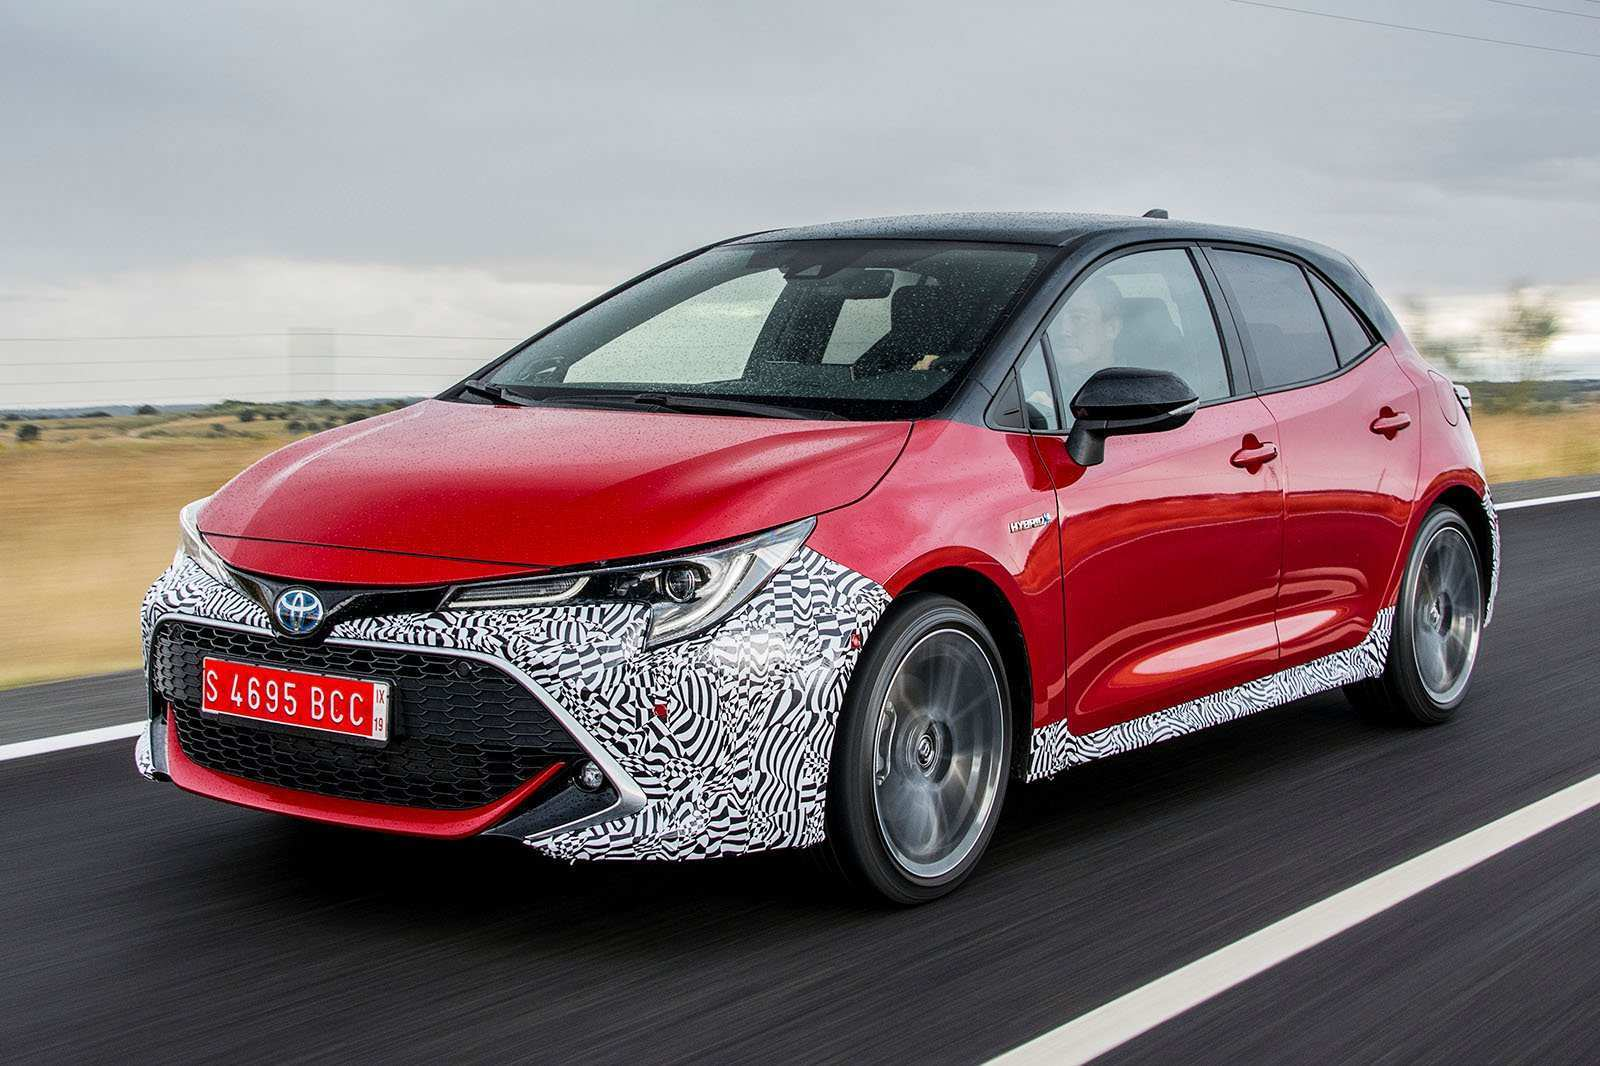 86 The Best Toyota Auris 2019 Release Date Price And Review